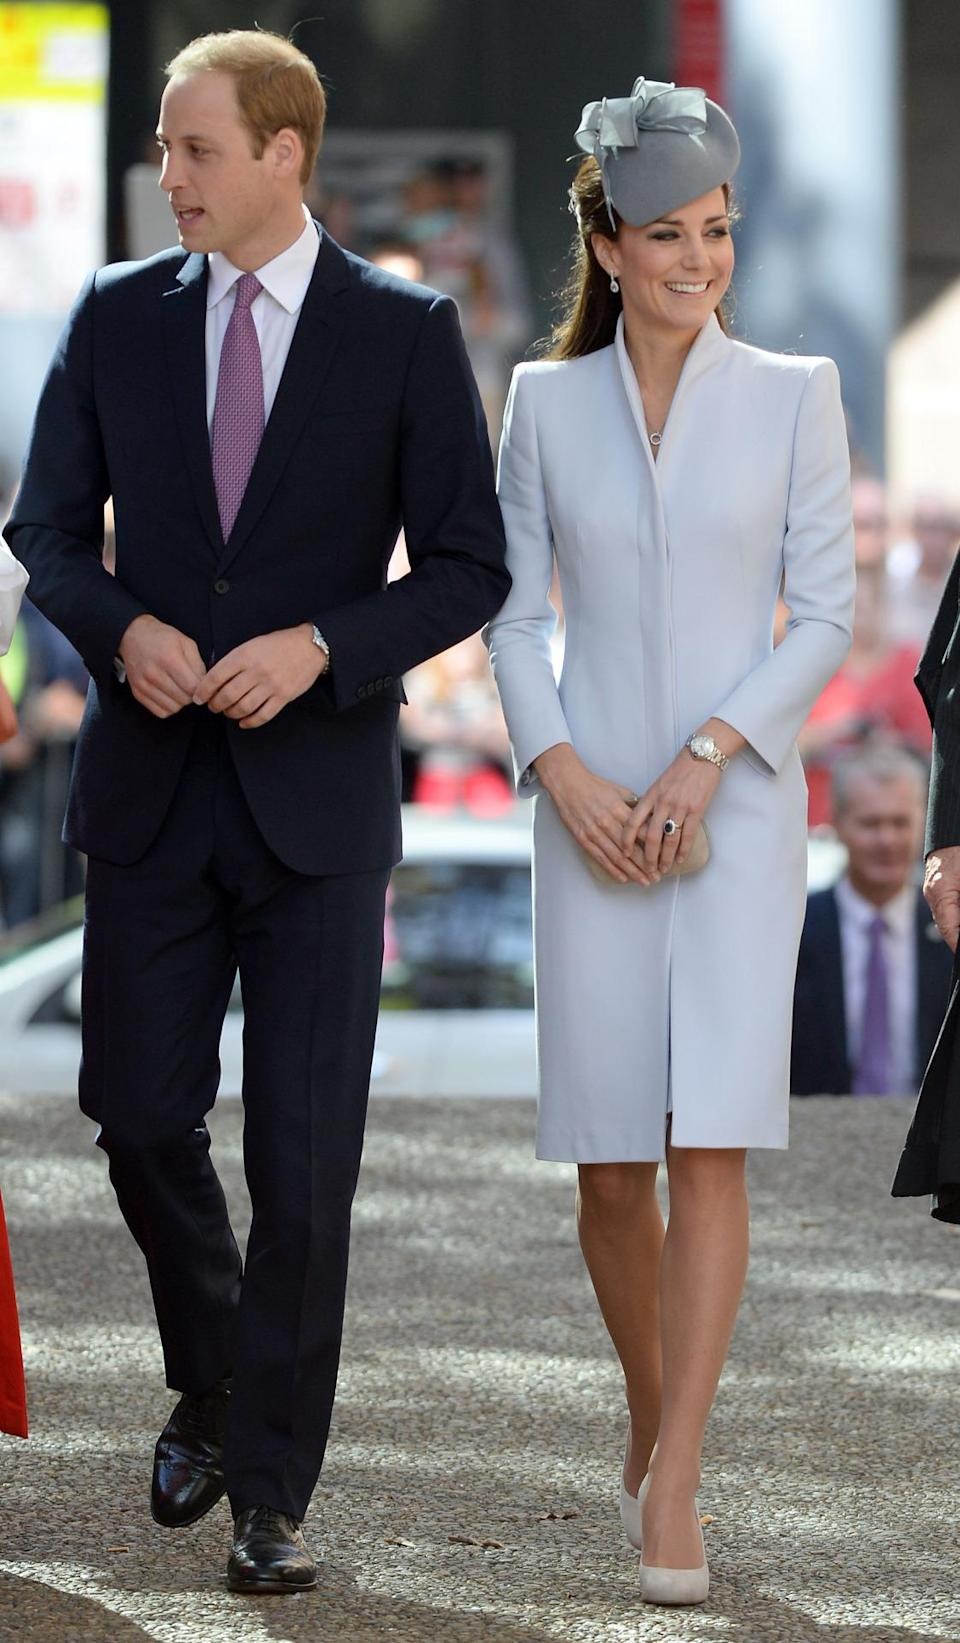 <p>Kate donned an elegant dove grey ensemble by Alexander McQueen for Easter services in Australia. She paired the look with a bespoke hat by Jane Taylor, an Alexander McQueen suede clutch and L.K. Bennett pumps. </p><p><i>[Photo: PA]</i></p>